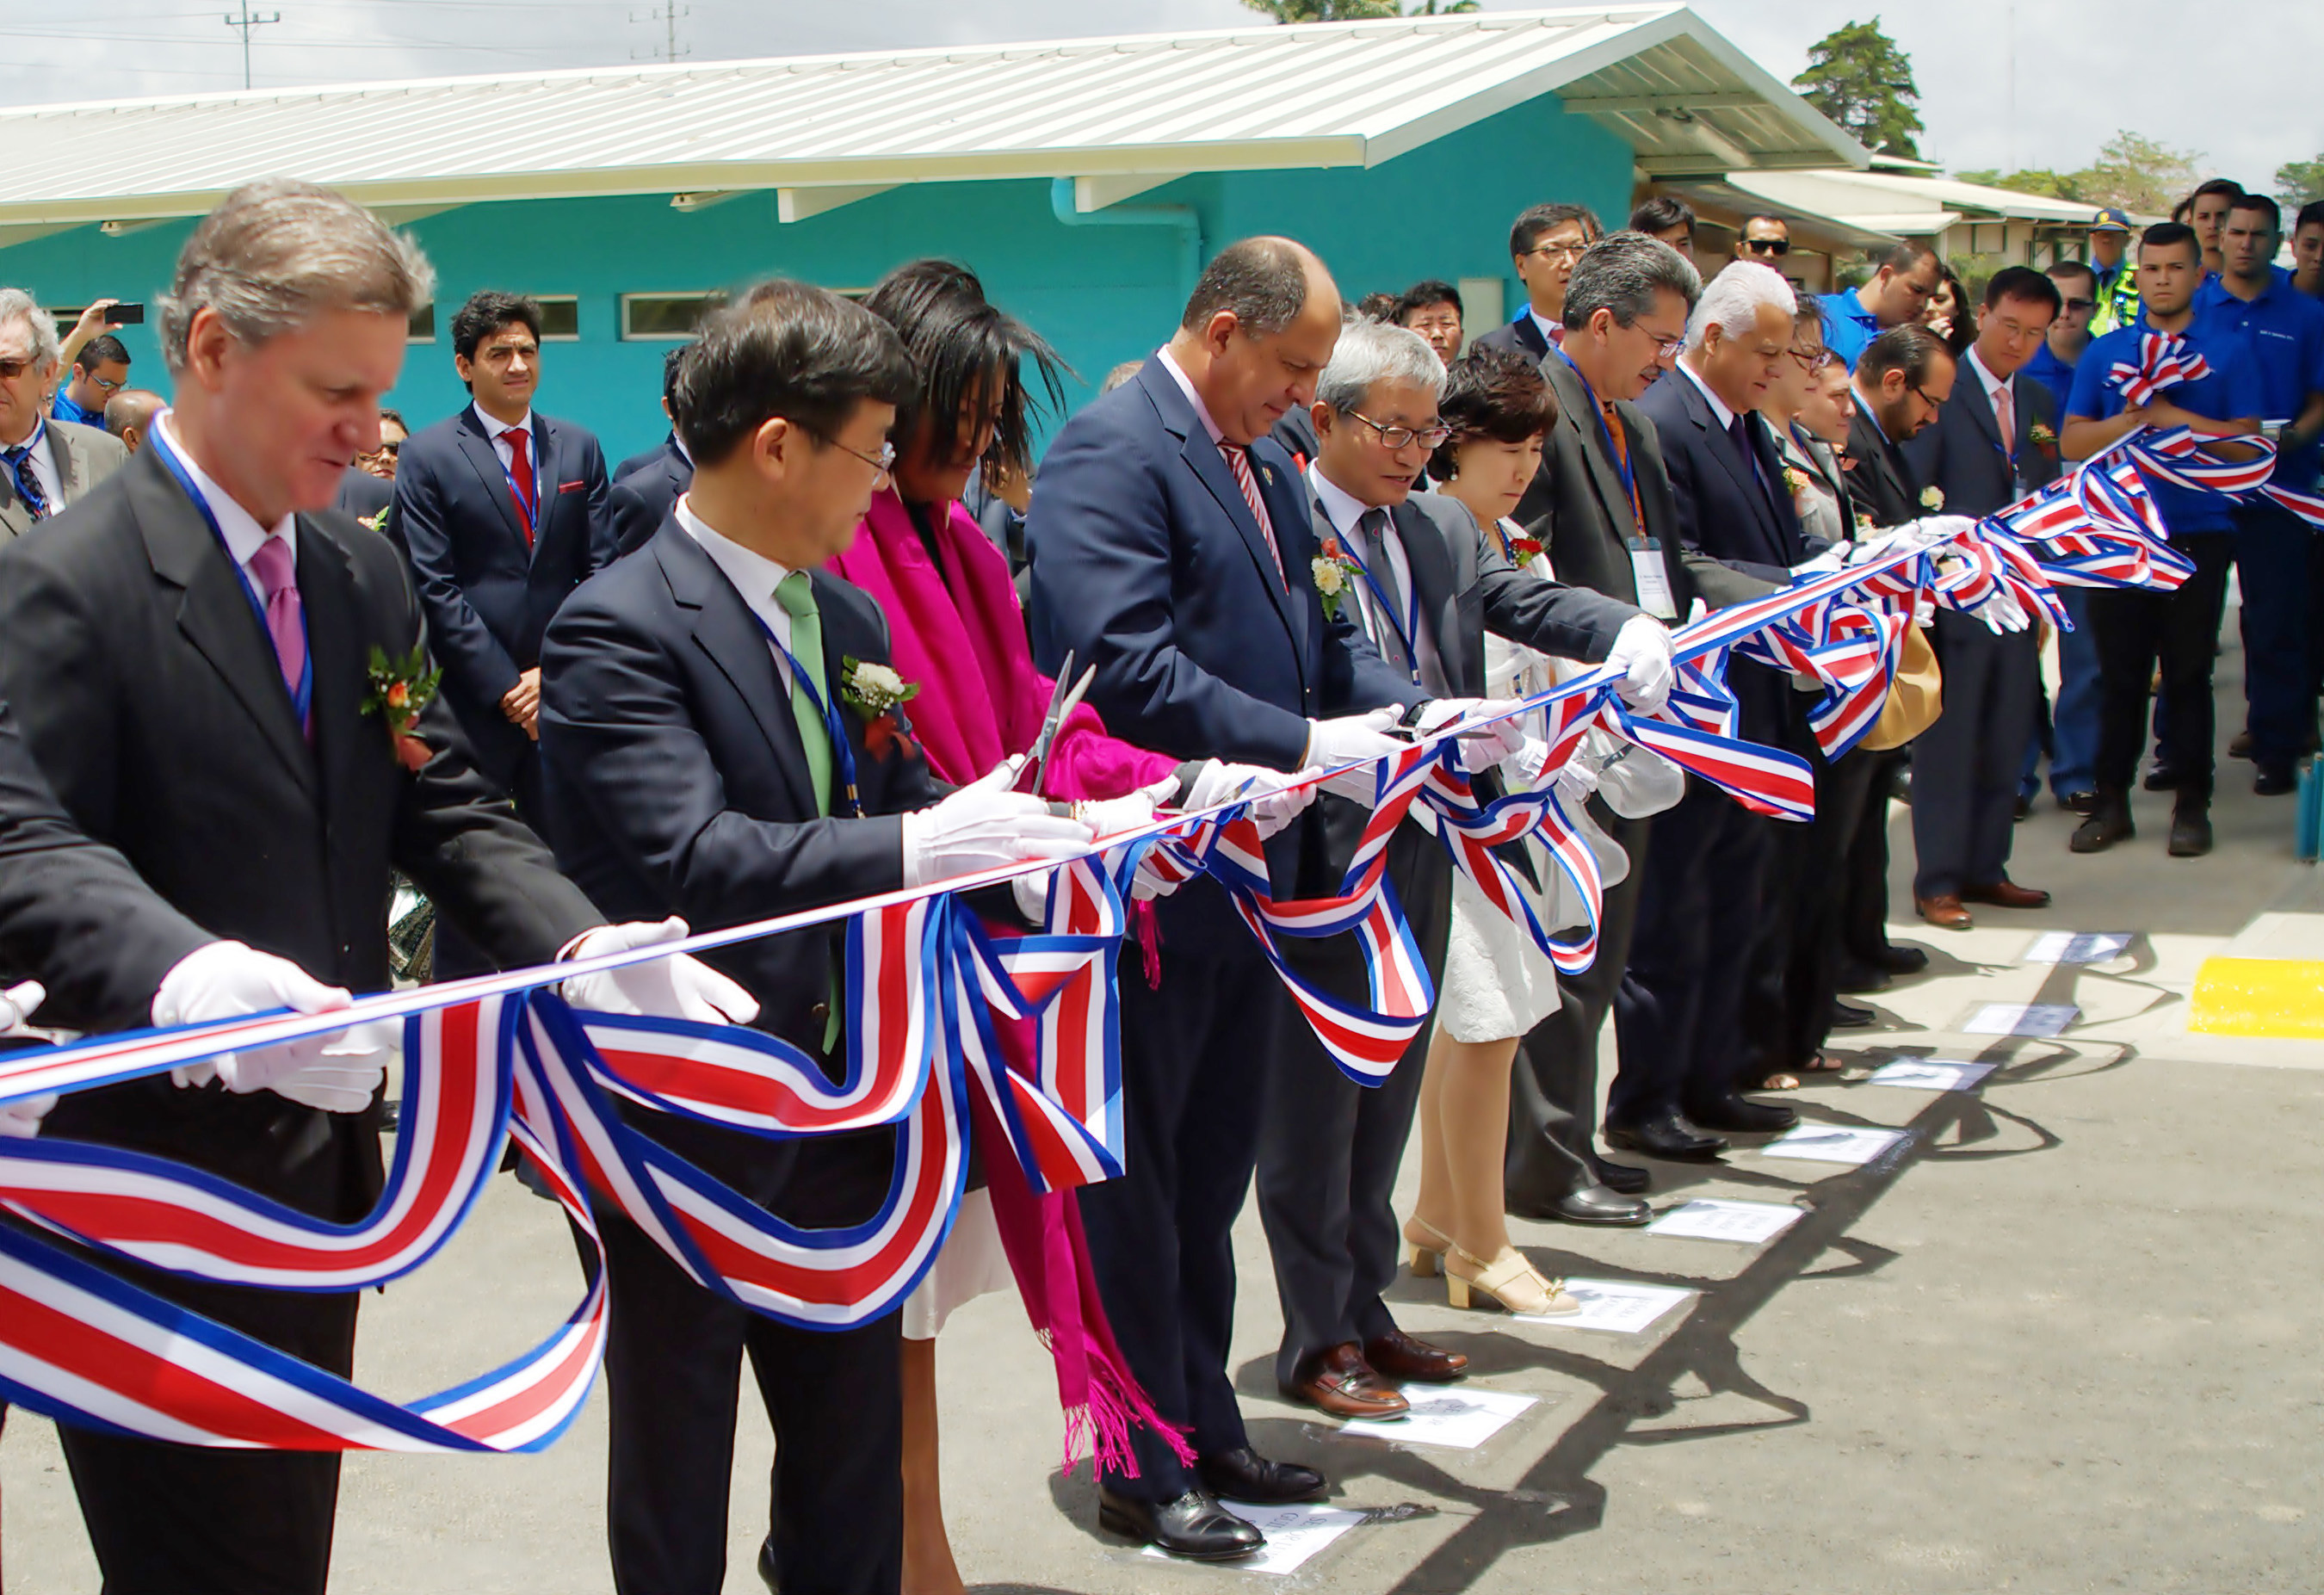 Sae-A Spinning is holding a ribbon-cutting to officially open the Sae-A Spinning S.R.L. Beginning third from the left, Cheryl Mills, Counselor and Chief of Staff for former Secretary of State to the United States (2009-2013) and Founder of BlackIvy Group; Luis Guillermo Solis, Costa Rican President; and Kim Woong-ki, Sae-A Trading Co. Ltd Chairman are pictured.